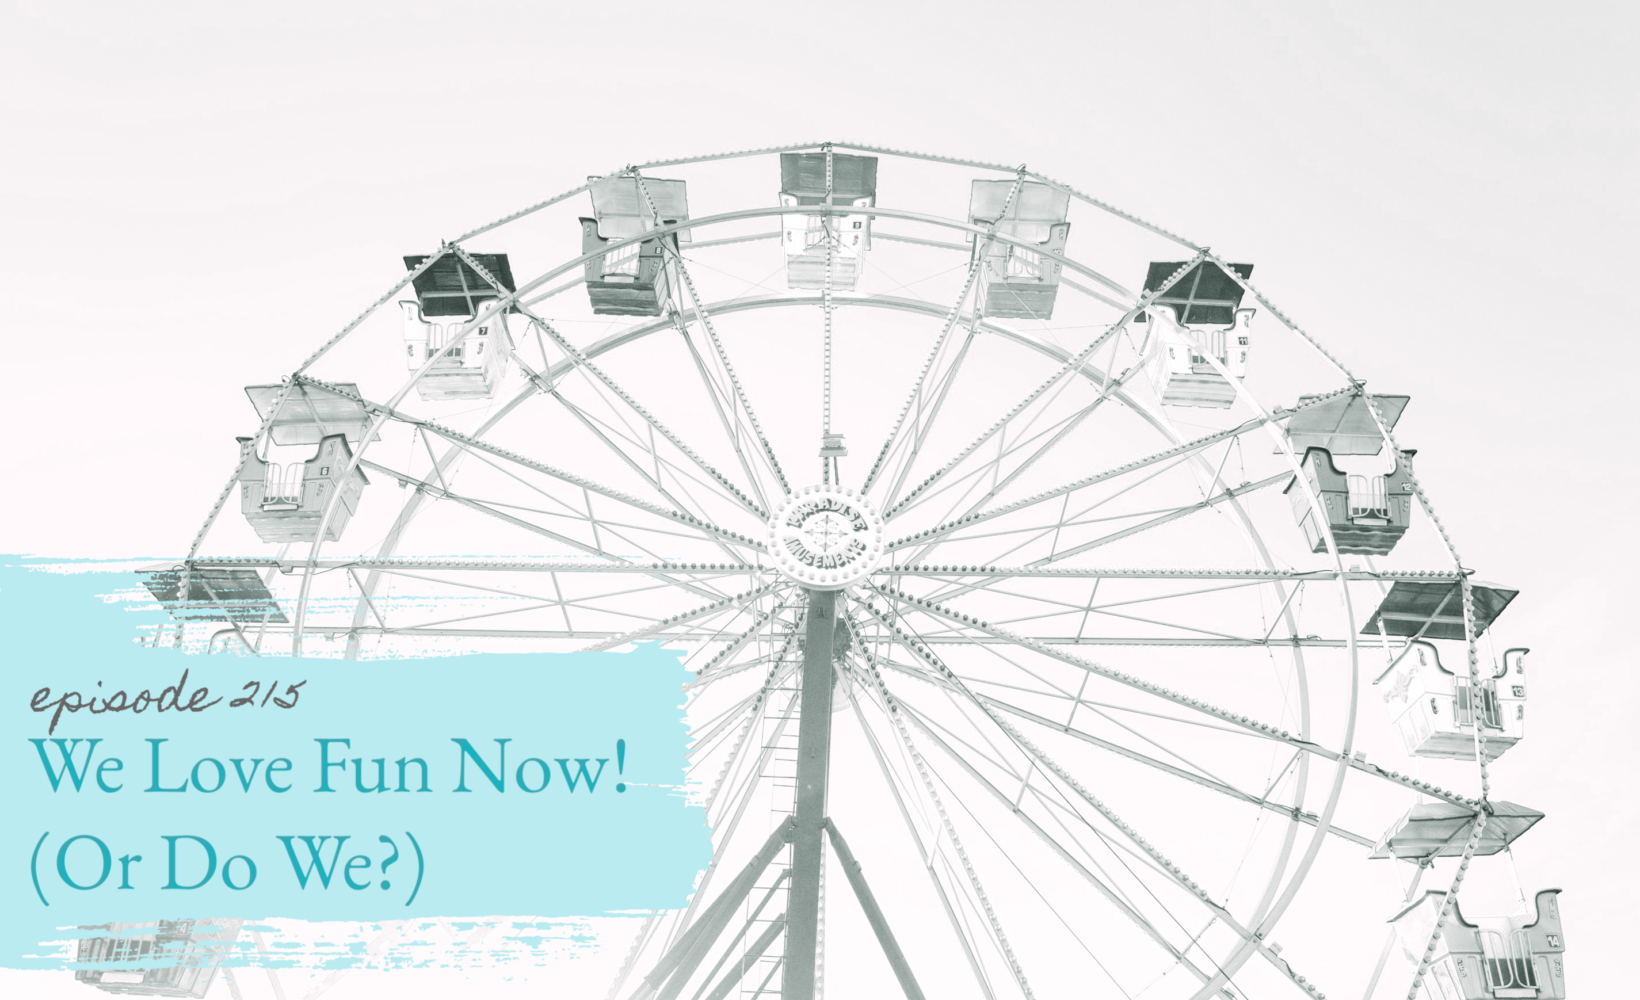 We Love Fun Now! (Or Do We?) PLUS Beach Reads: Episode 215